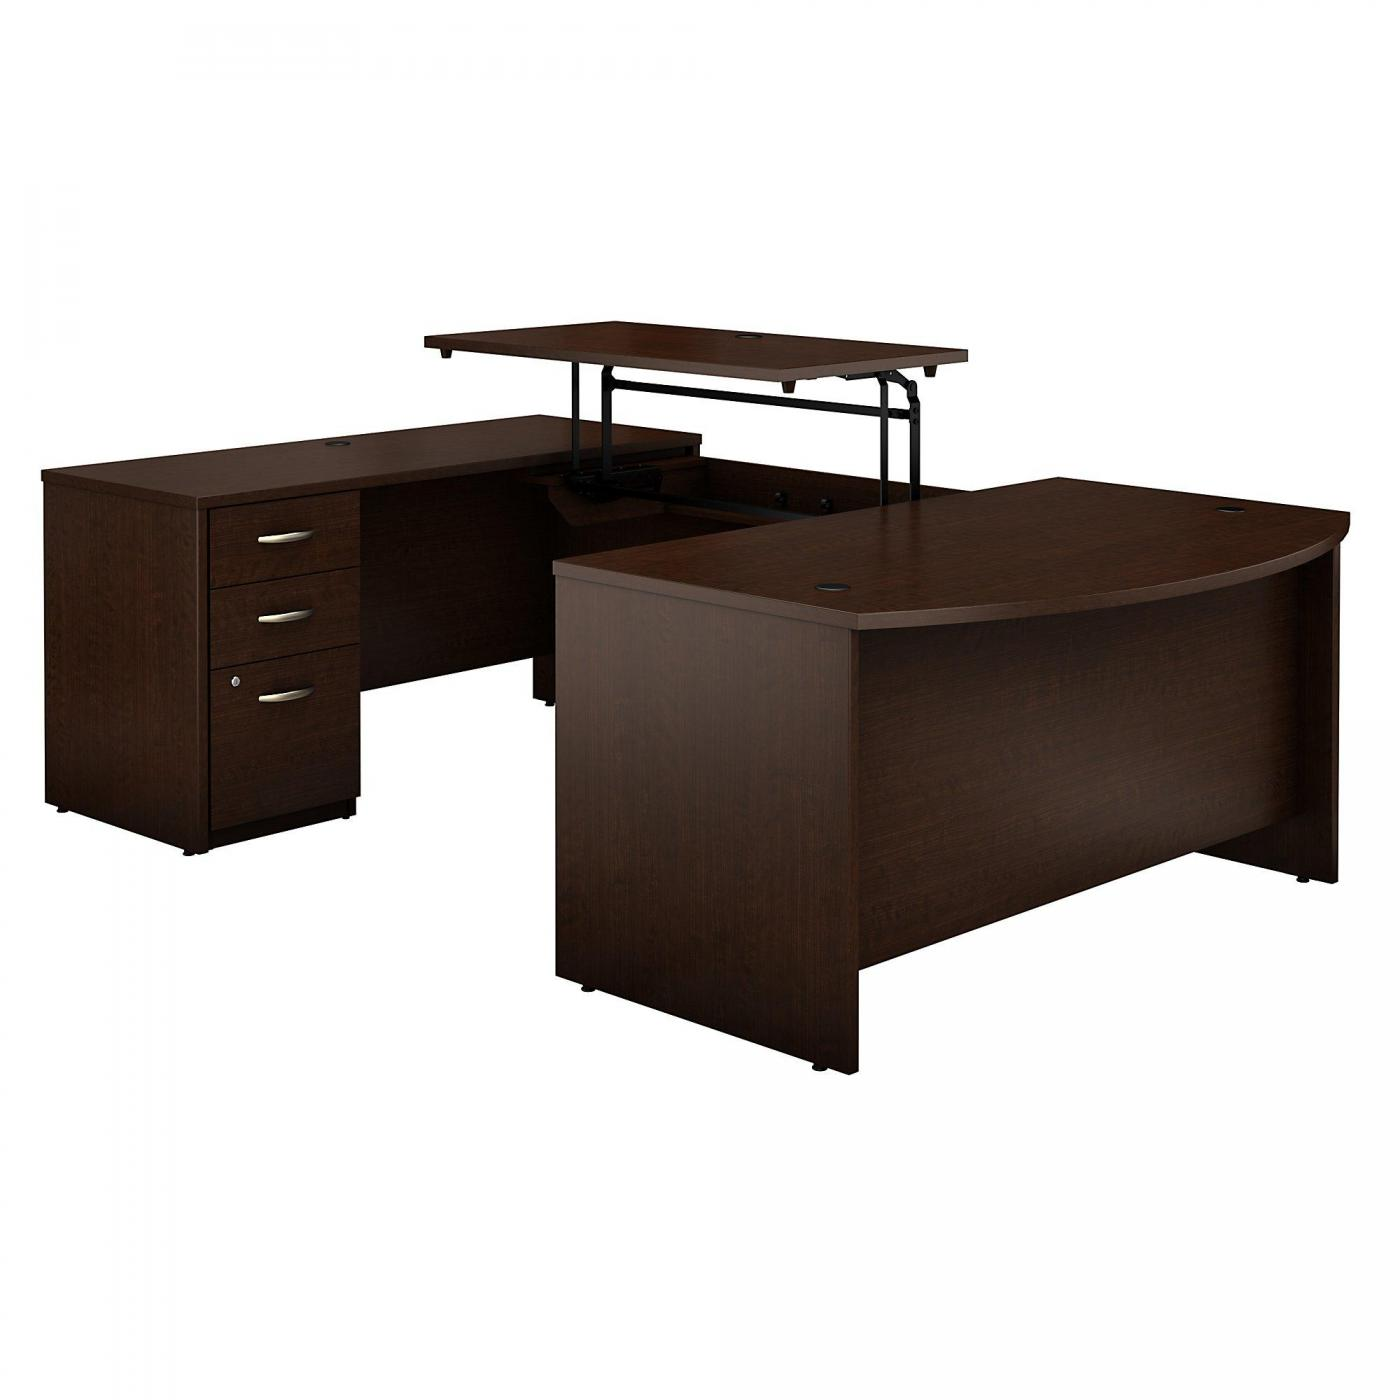 <font color=#c60><b>BUSH BUSINESS FURNITURE SERIES C ELITE 60W X 36D 3 POSITION SIT TO STAND BOW FRONT U SHAPED DESK WITH 3 DRAWER FILE CABINET. FREE SHIPPING</font></b>